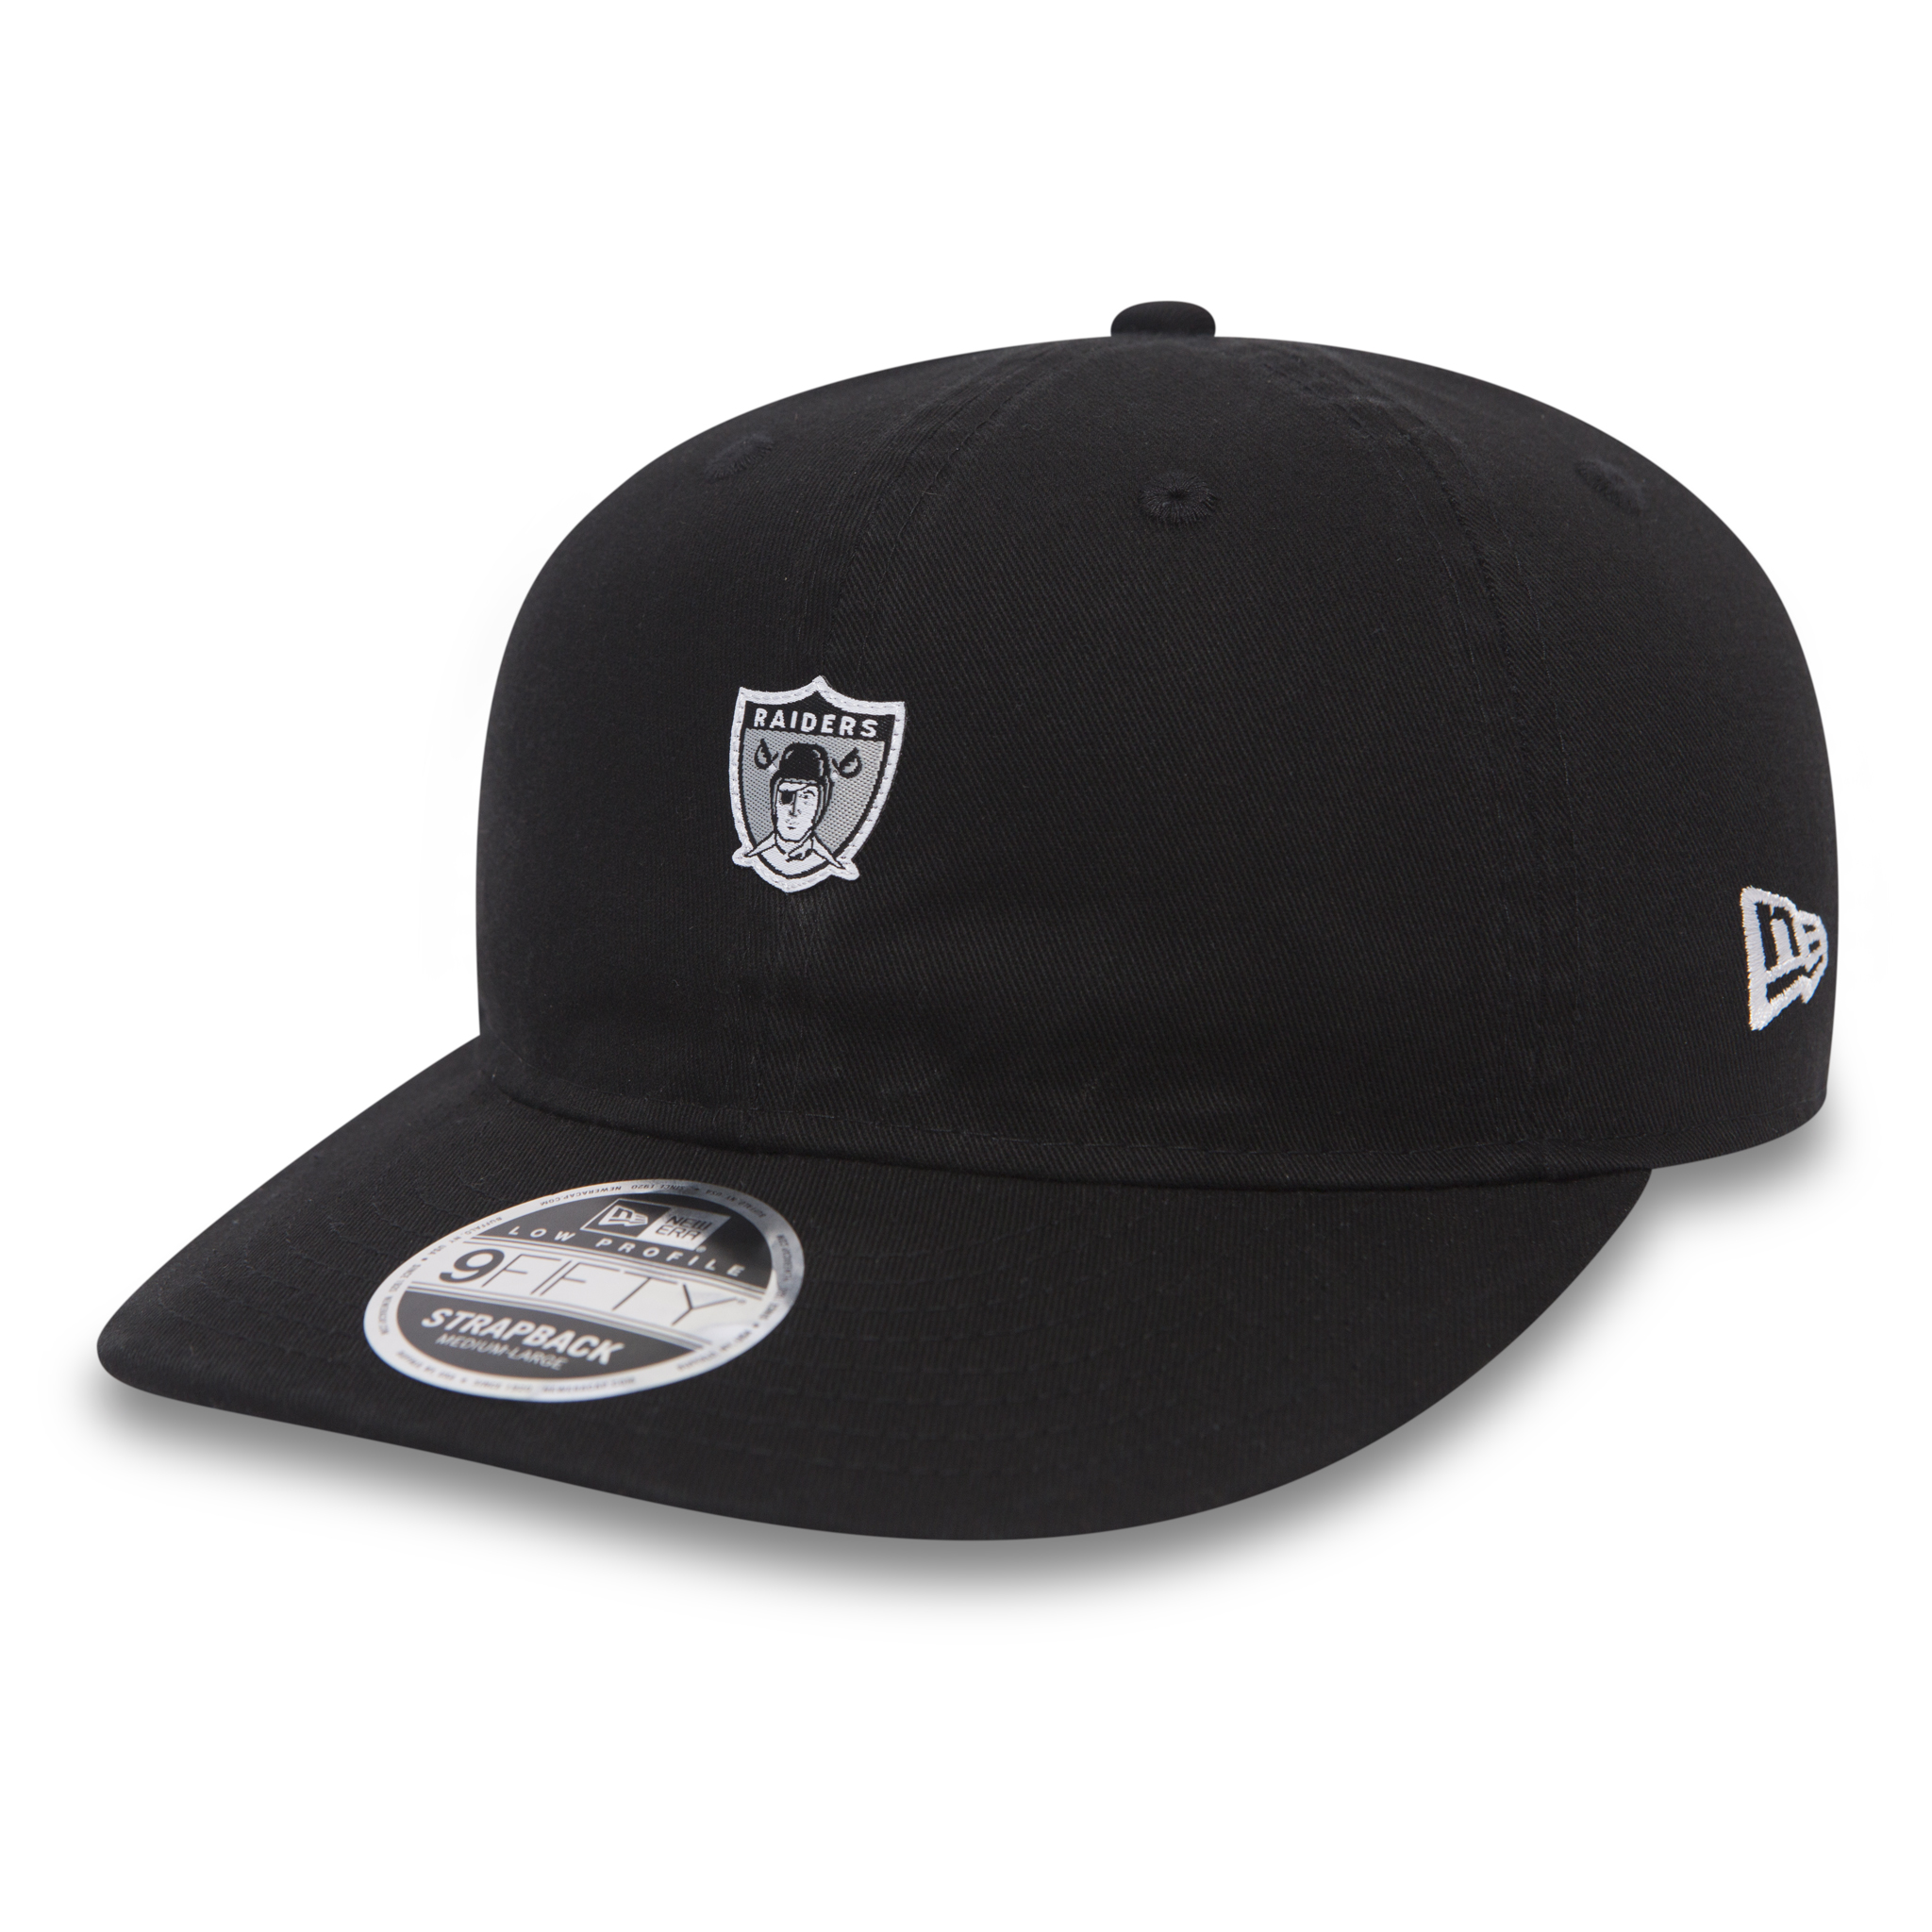 Oakland Raiders Unstructured 9FIFTY Strapback 3d61025397df